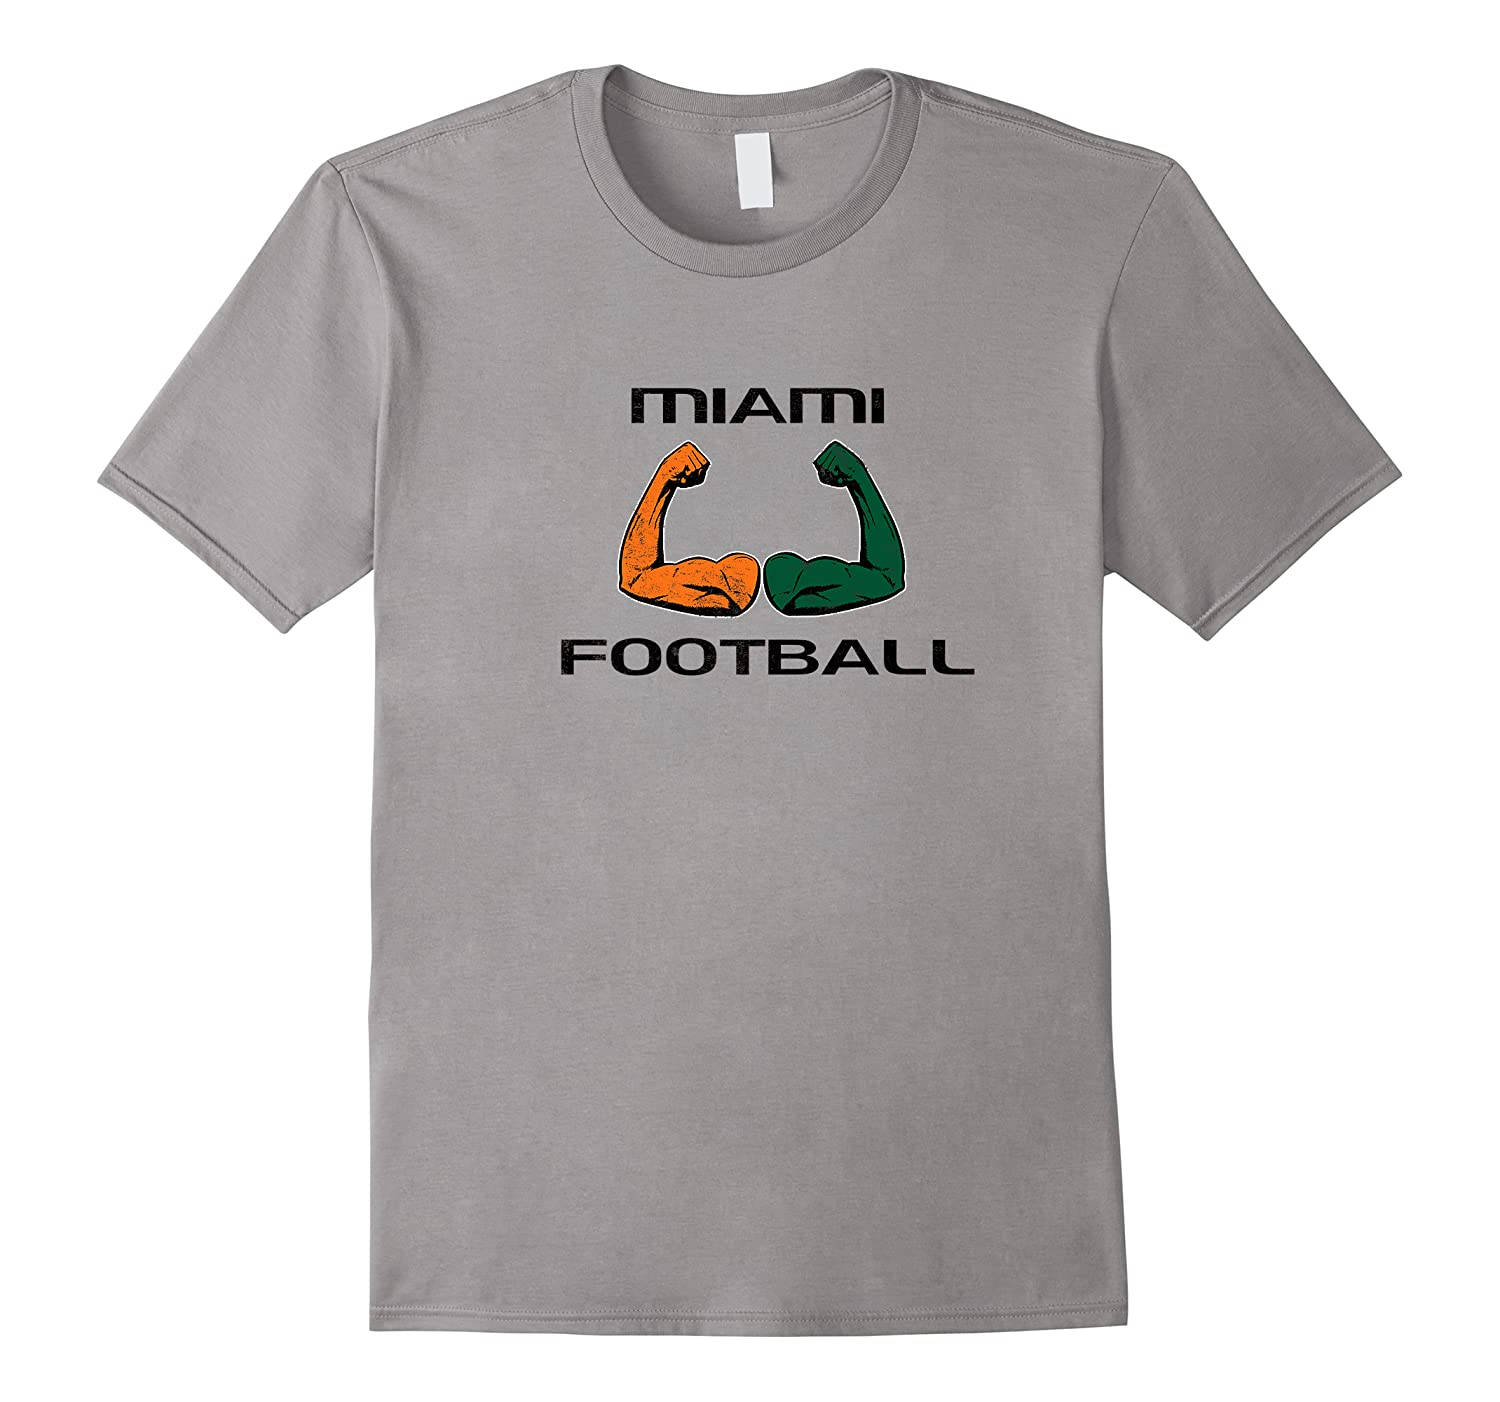 Miami Sports Fan Cool College Football Game Day Gifts Shirts